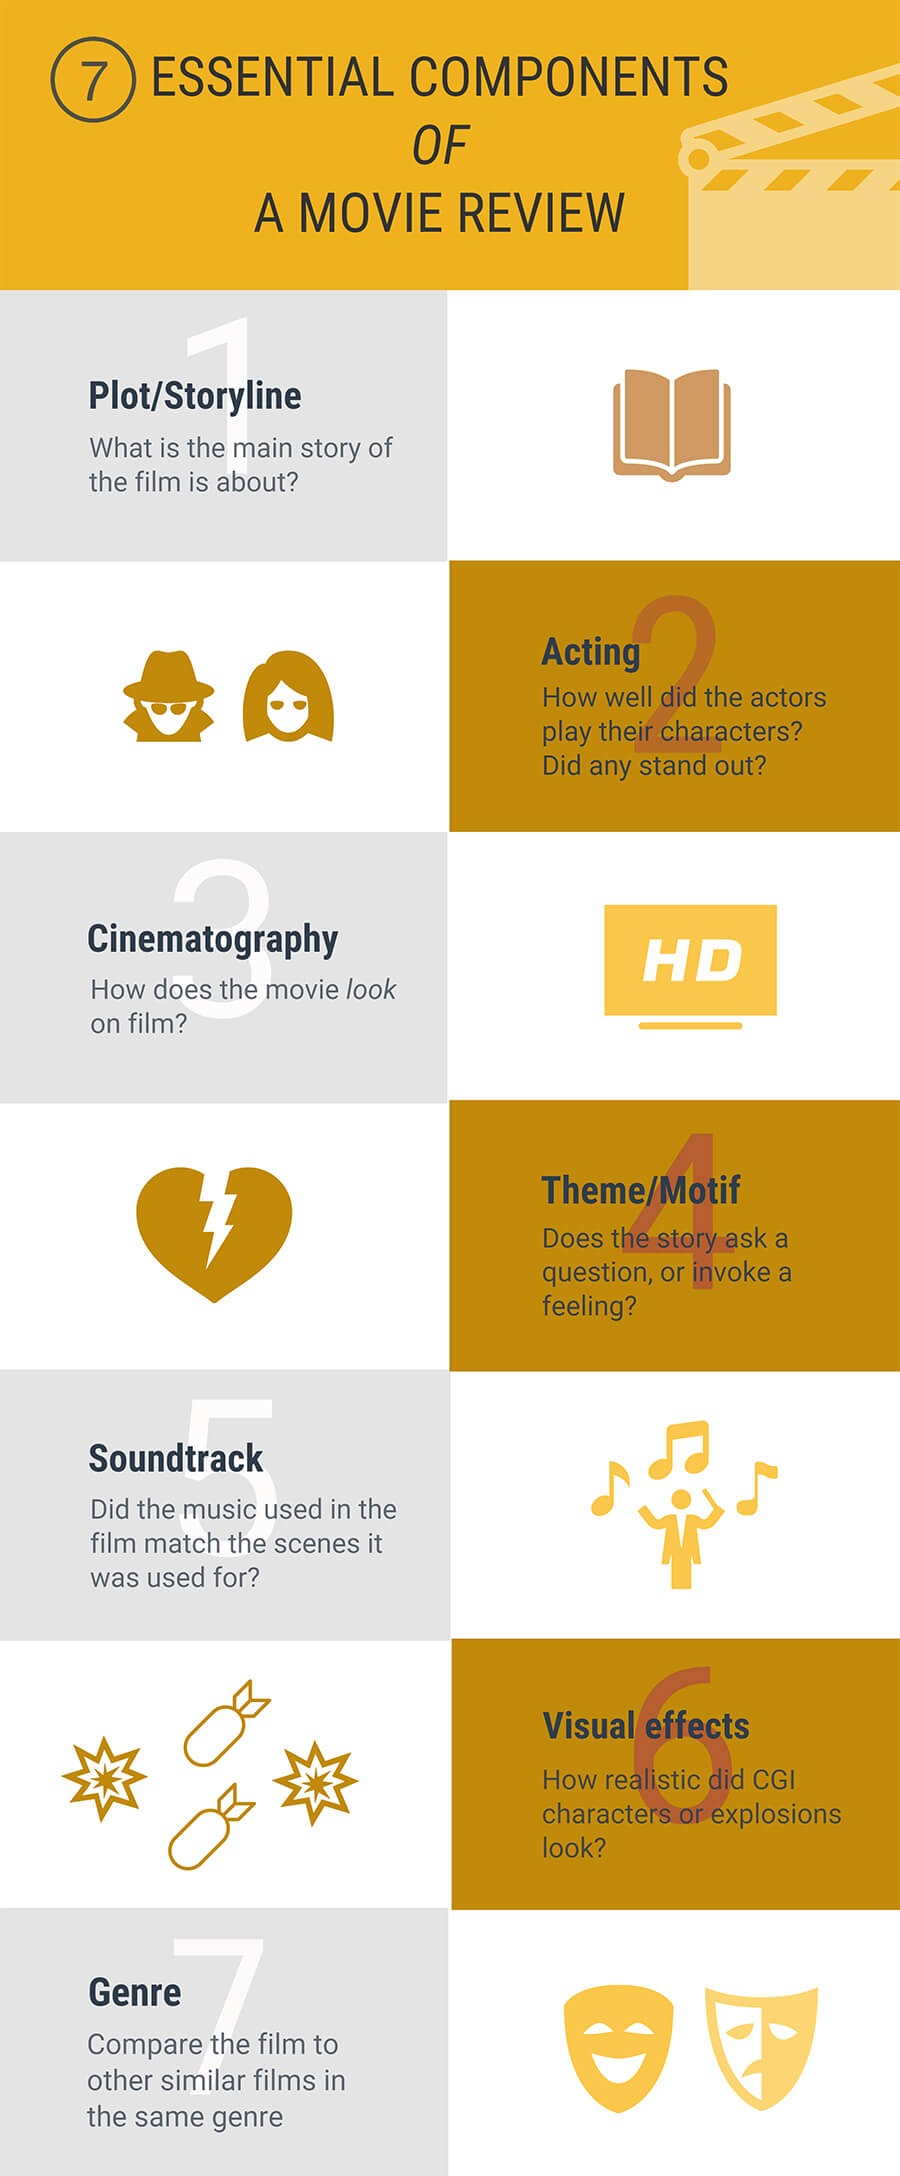 7 essential components of a movie review